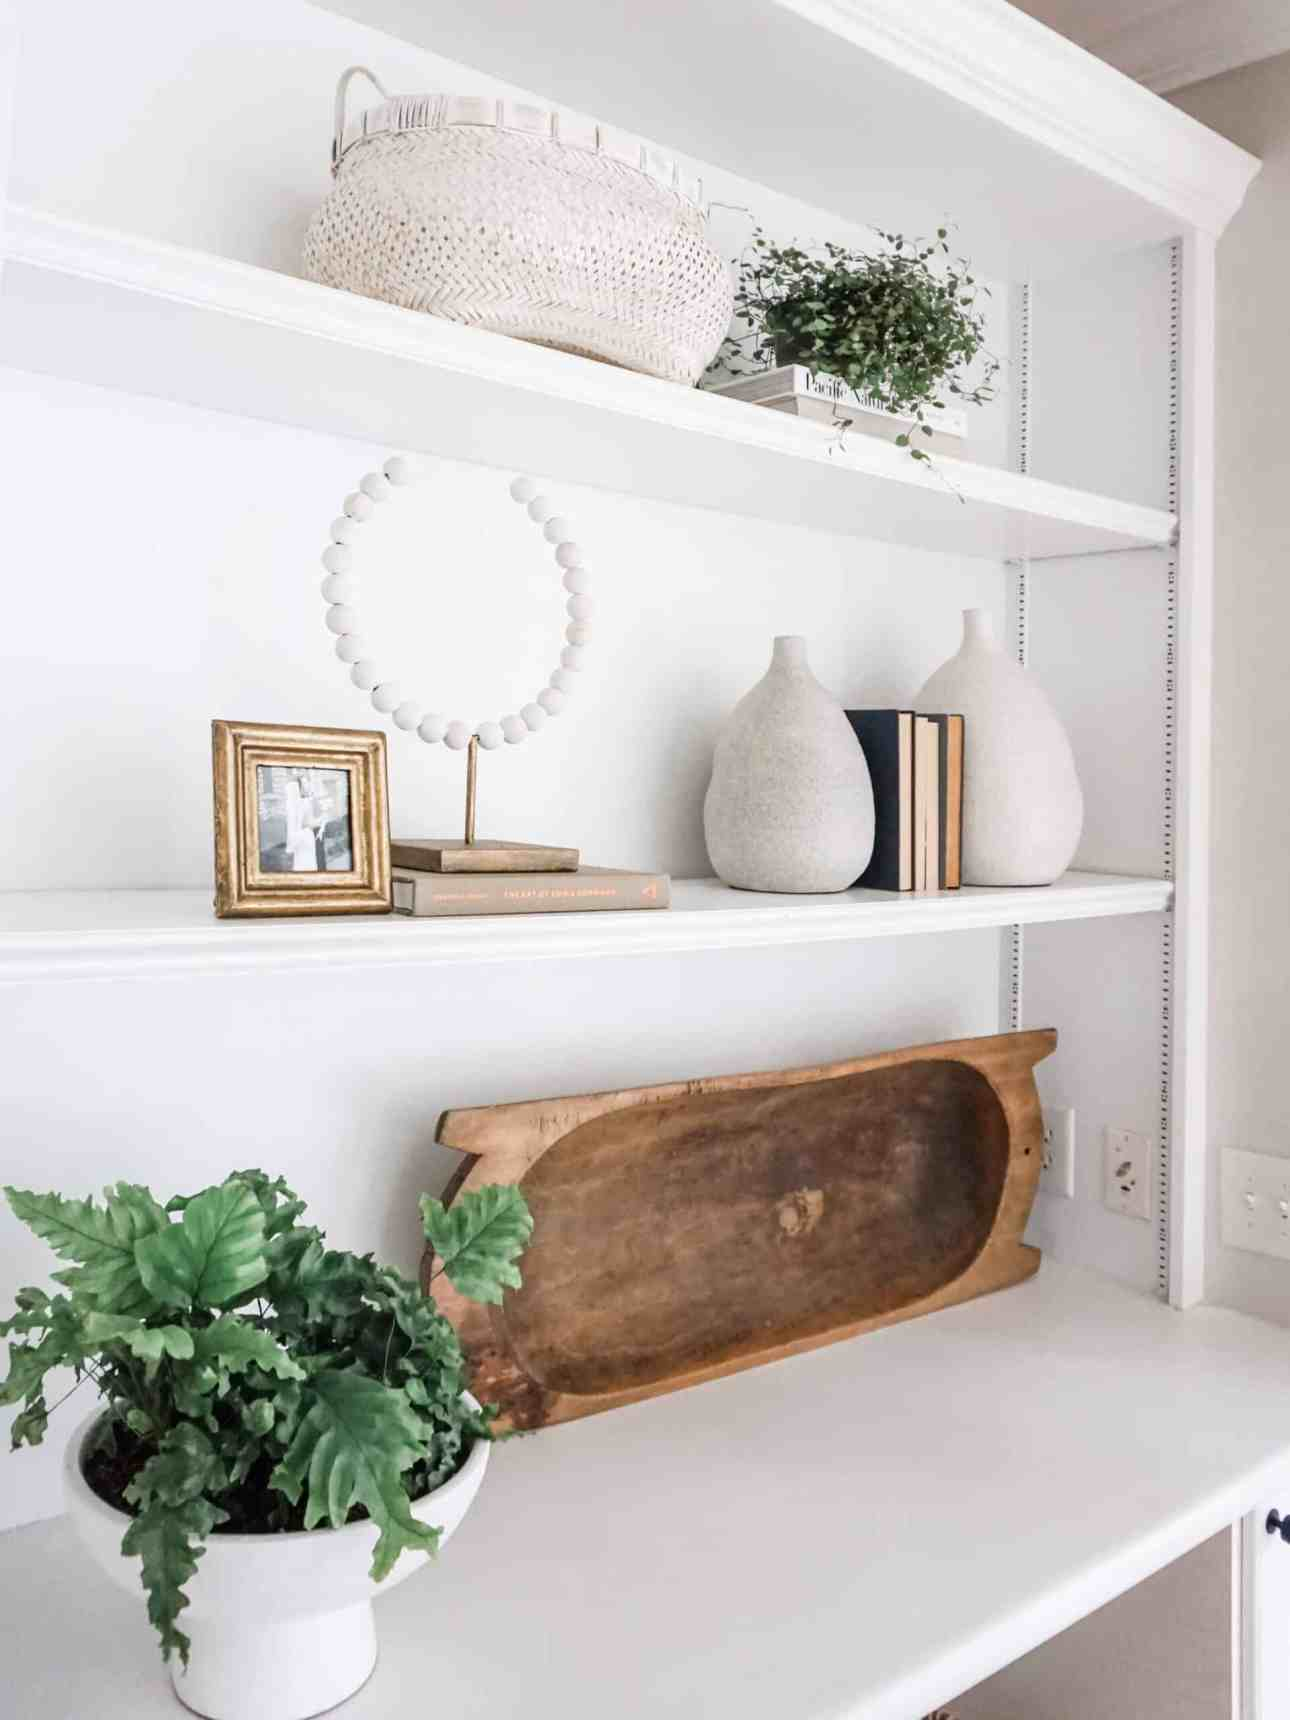 How to style a shelf like a pro, including tips for following the rule of three, adding plants to shelves, using books for shelf decor, and more.  How to create a cohesive design with builtins! #builtins #bookshelfstyling #shelfdecor #shelfstyling #builtins #bookcase #fireplacedecor #coastalbookcase #coastaldecor #neutralbookshelf #shelfie